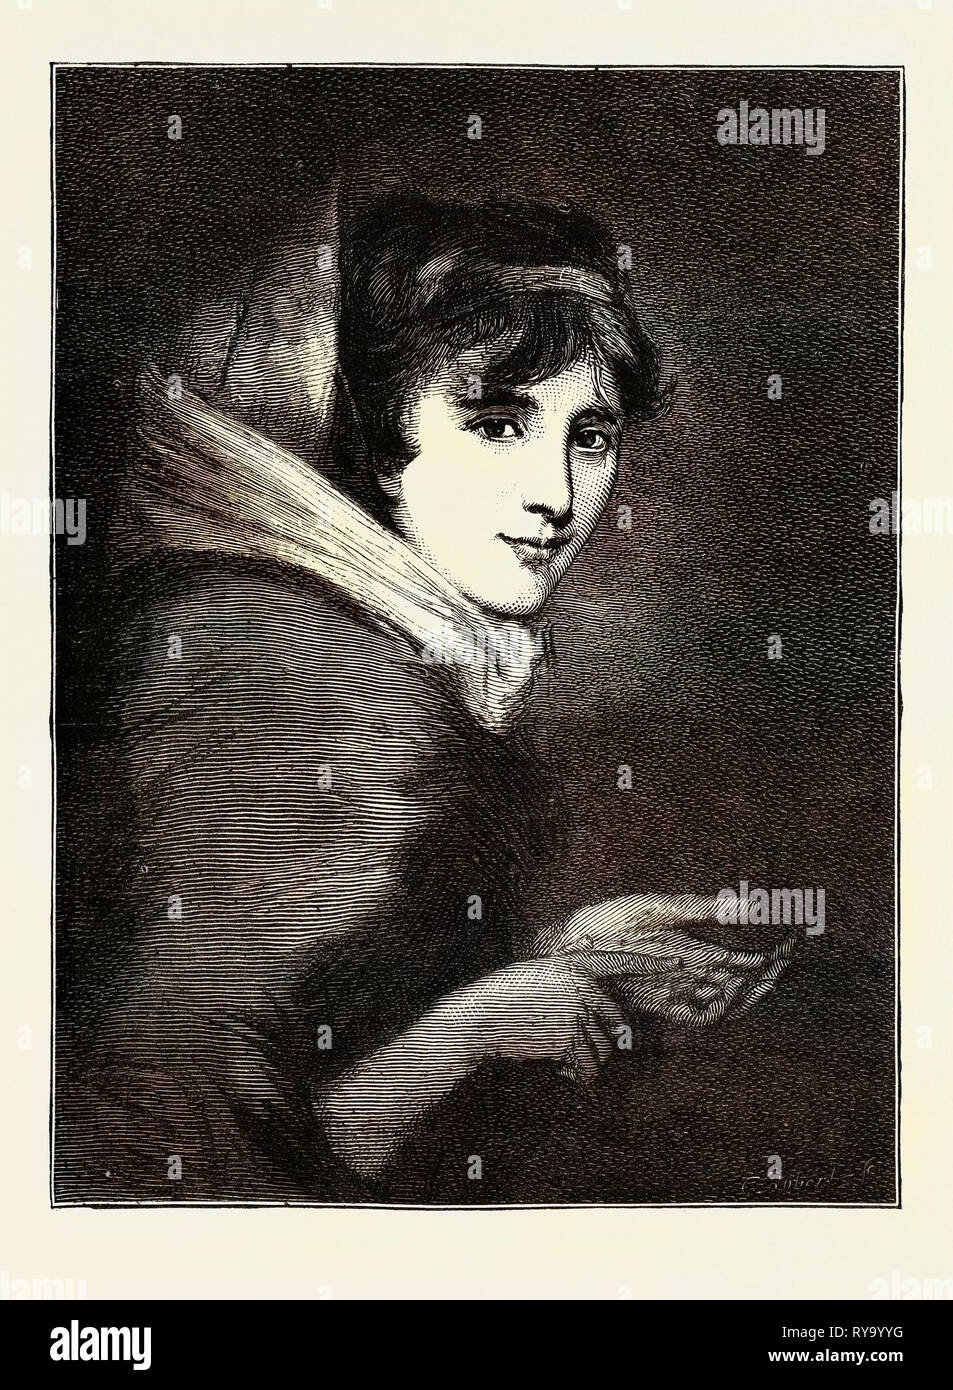 Lady Smith at the Age of 16 or 17, Died February 3, Aged 103 Years and Nearly Nine Months - Stock Image